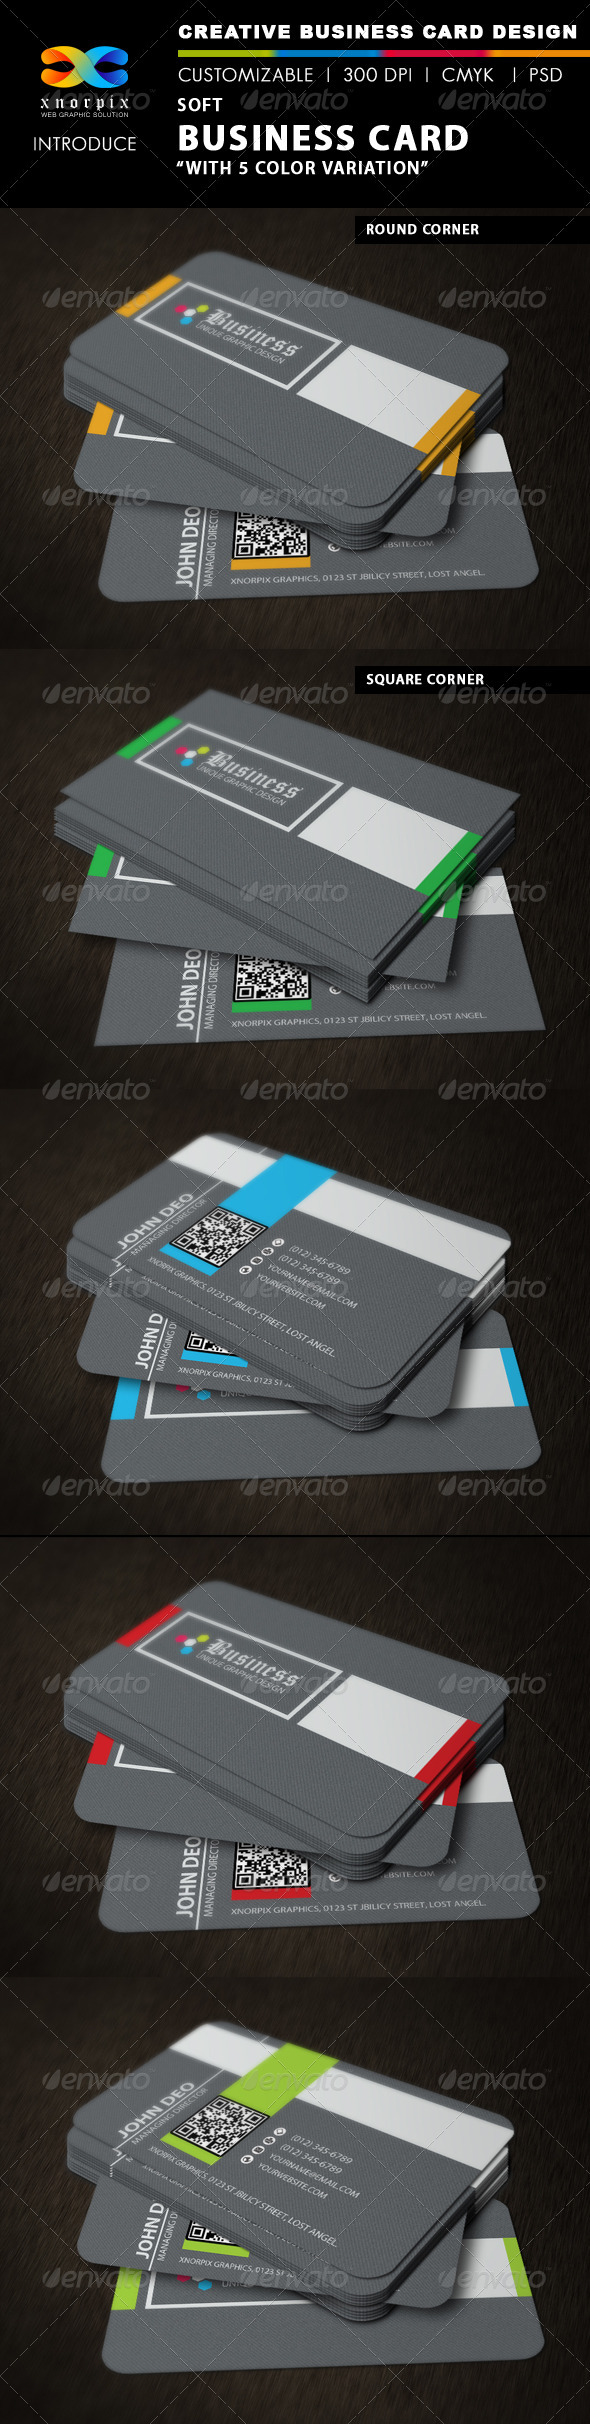 GraphicRiver Soft Business Card 3413529